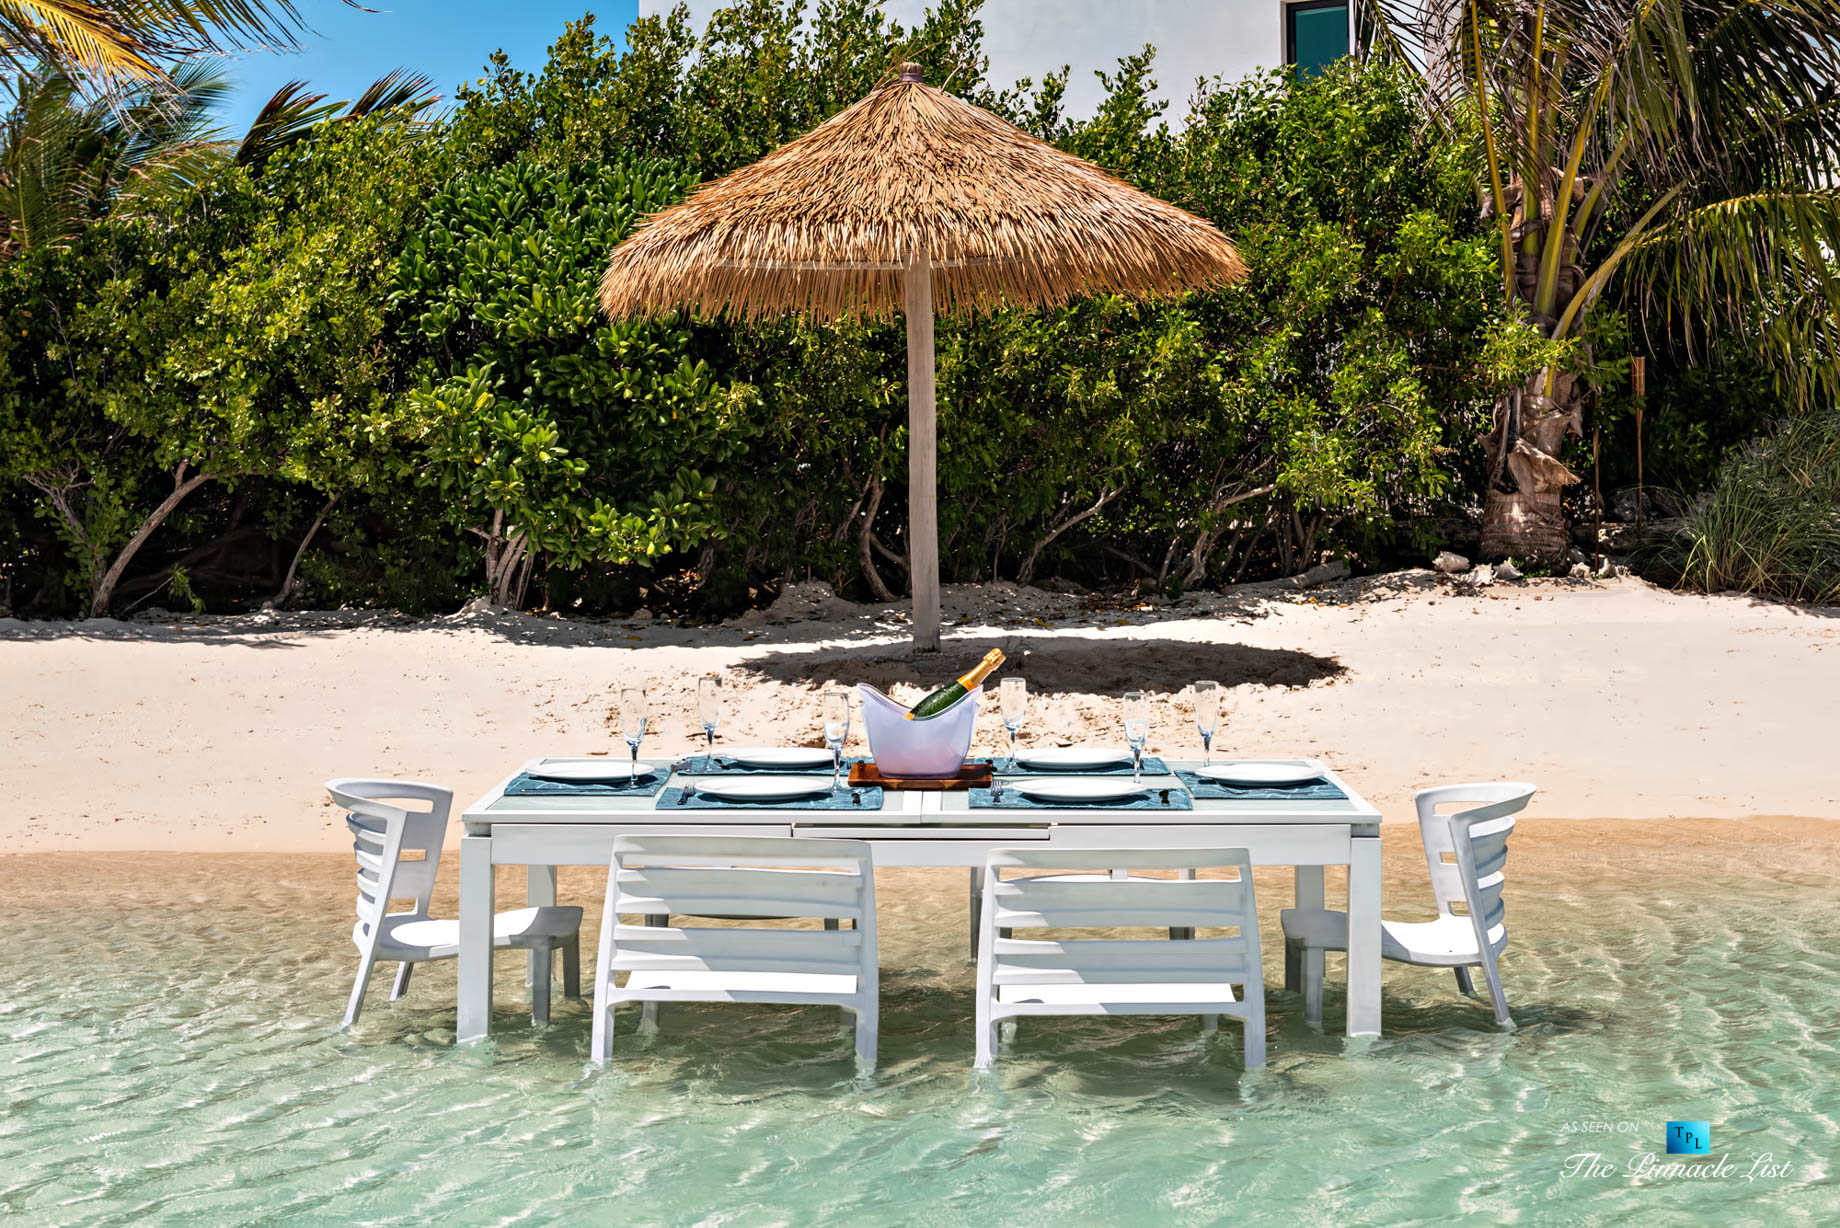 Tip of the Tail Villa - Providenciales, Turks and Caicos Islands - Caribbean Villa Private Beach Table - Luxury Real Estate - South Shore Peninsula Home